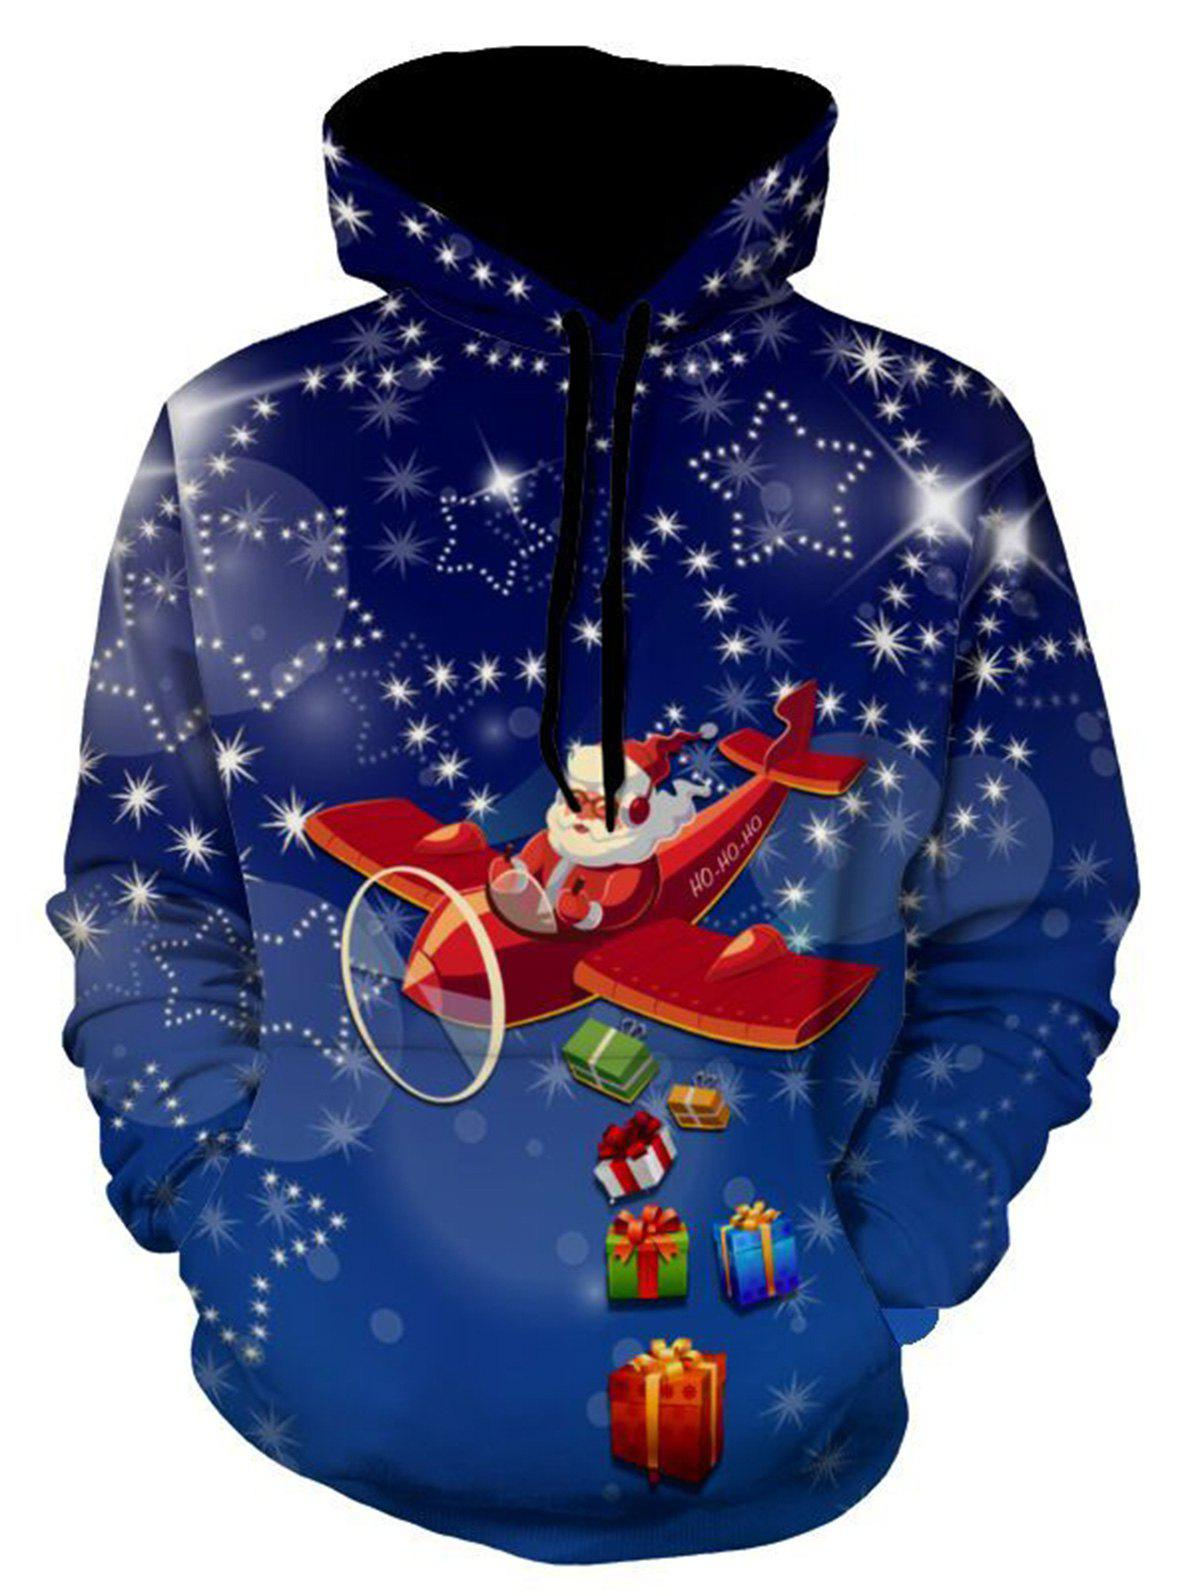 Santa Clause Christmas Gifts Printed HoodieMEN<br><br>Size: 3XL; Color: BLUE; Material: Polyester,Spandex; Clothes Type: Hoodie; Shirt Length: Regular; Sleeve Length: Full; Style: Fashion; Patterns: Cartoon,Print,Stars; Thickness: Regular; Occasion: Casual ,Daily Use,Going Out; Weight: 0.5400kg; Package Contents: 1 x Hoodie;